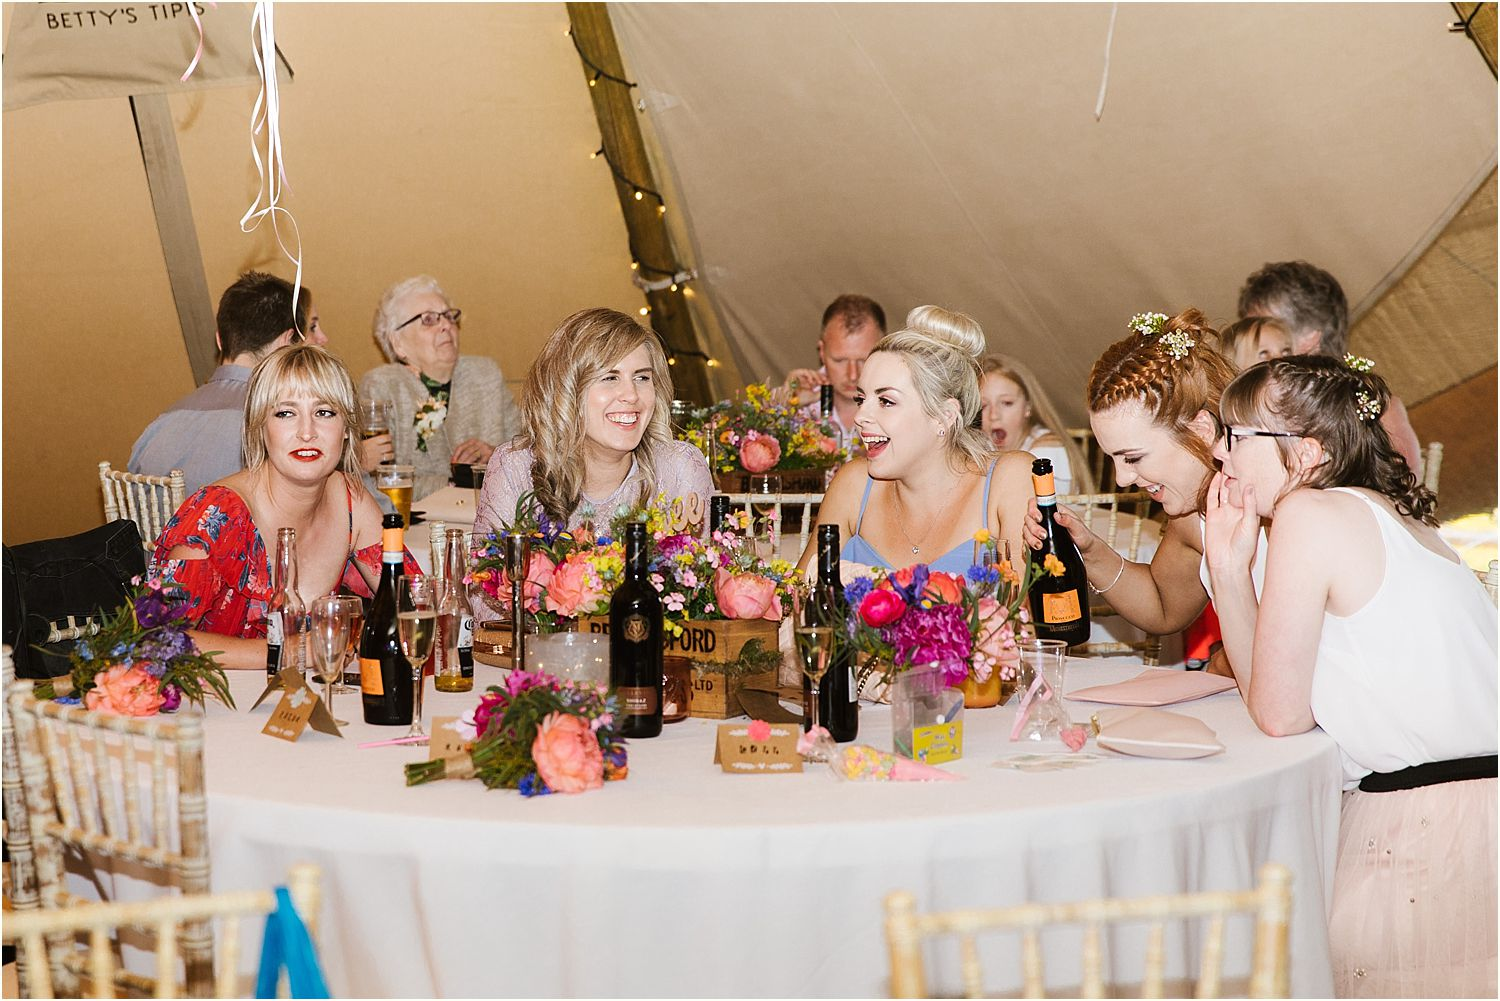 Guests enjoying evening reception in tipi by Betty's Tipis at Lancashire farm wedding